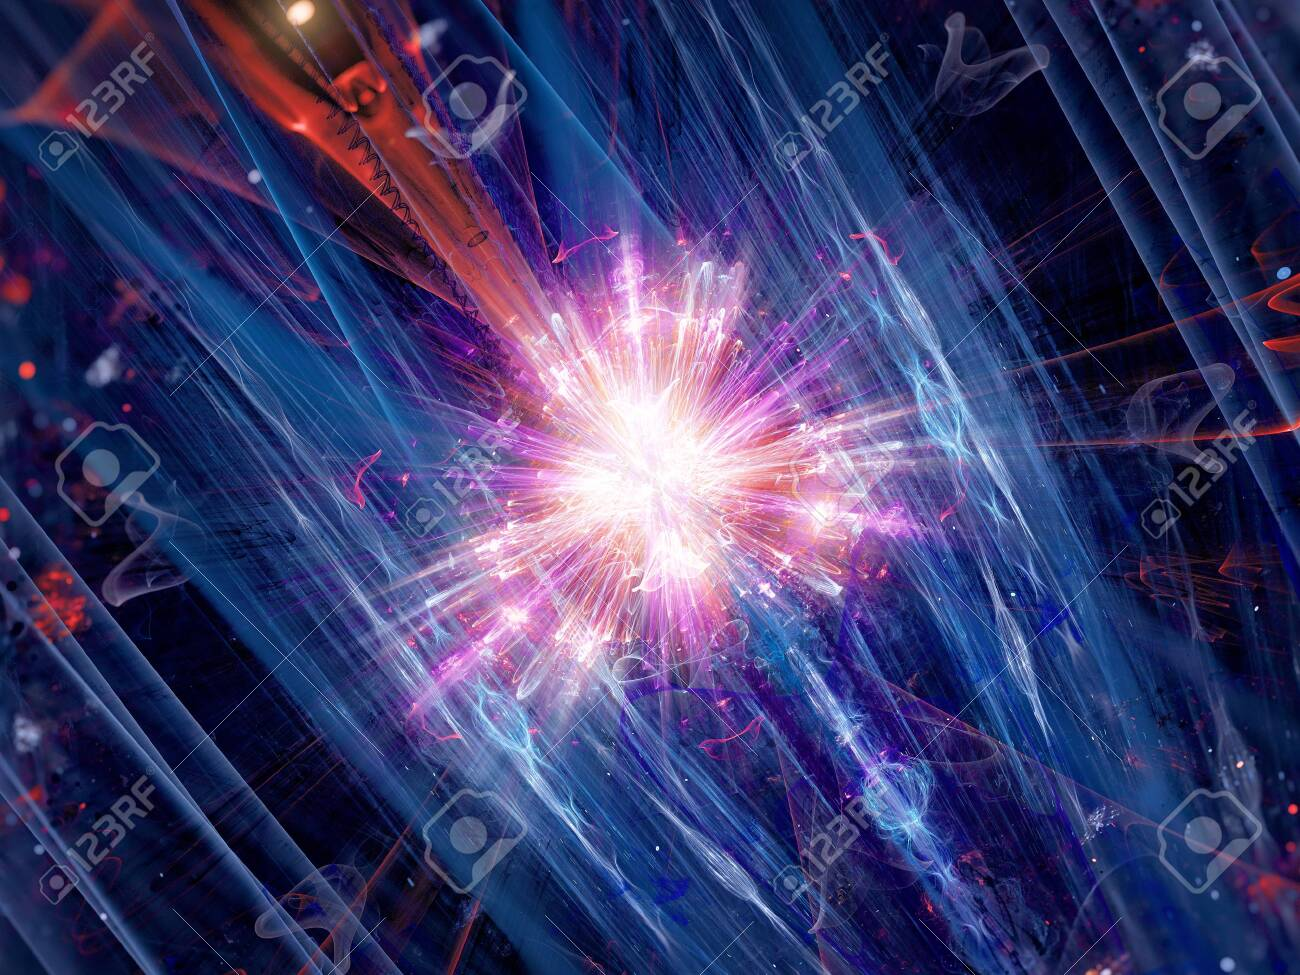 Colorful fission of particle in collider, computer generated abstract background, 3D rendering - 153135652